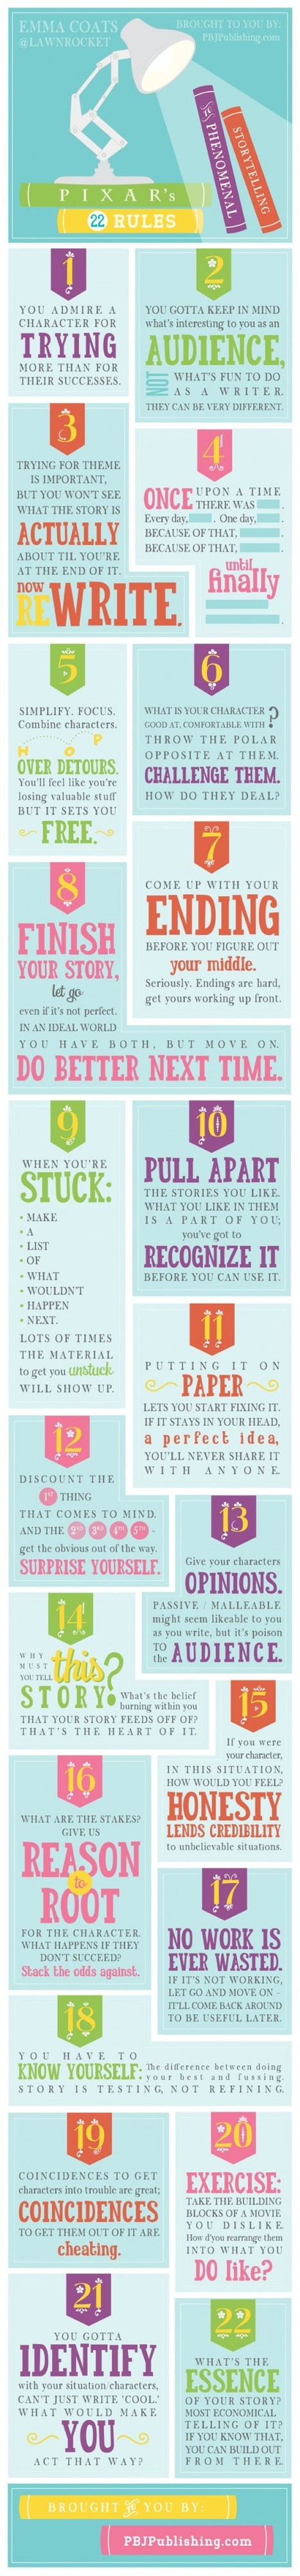 Pixar's 22 Rules to Phenomenal Storytelling [INFOGRAPHIC] | Crowdfunding for NonProfits | Scoop.it